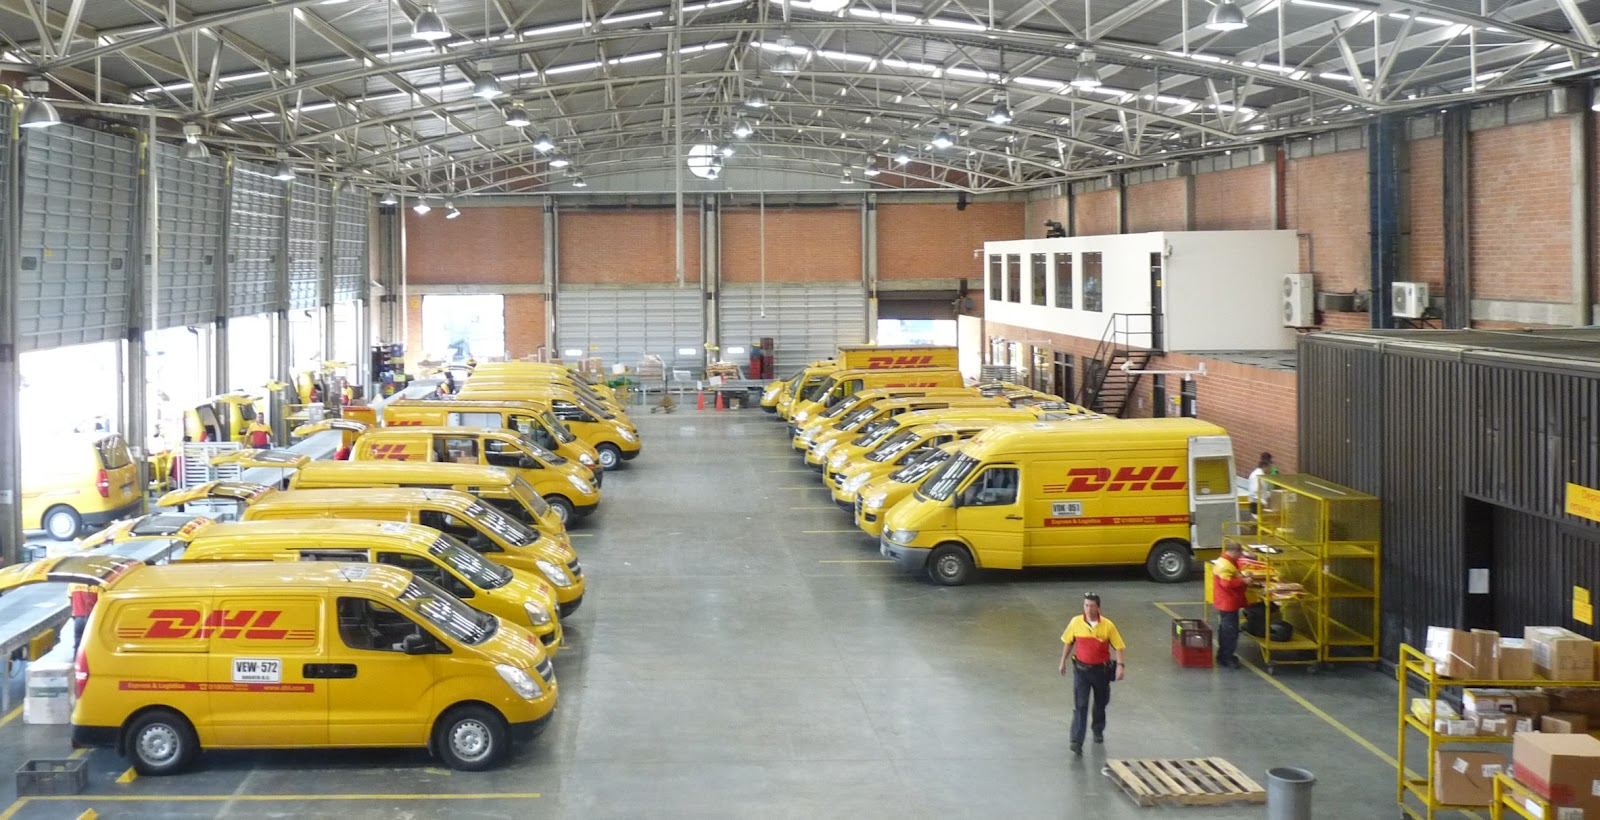 Dhl express colombia telefono bogota wroc awski for Oficinas dhl colombia